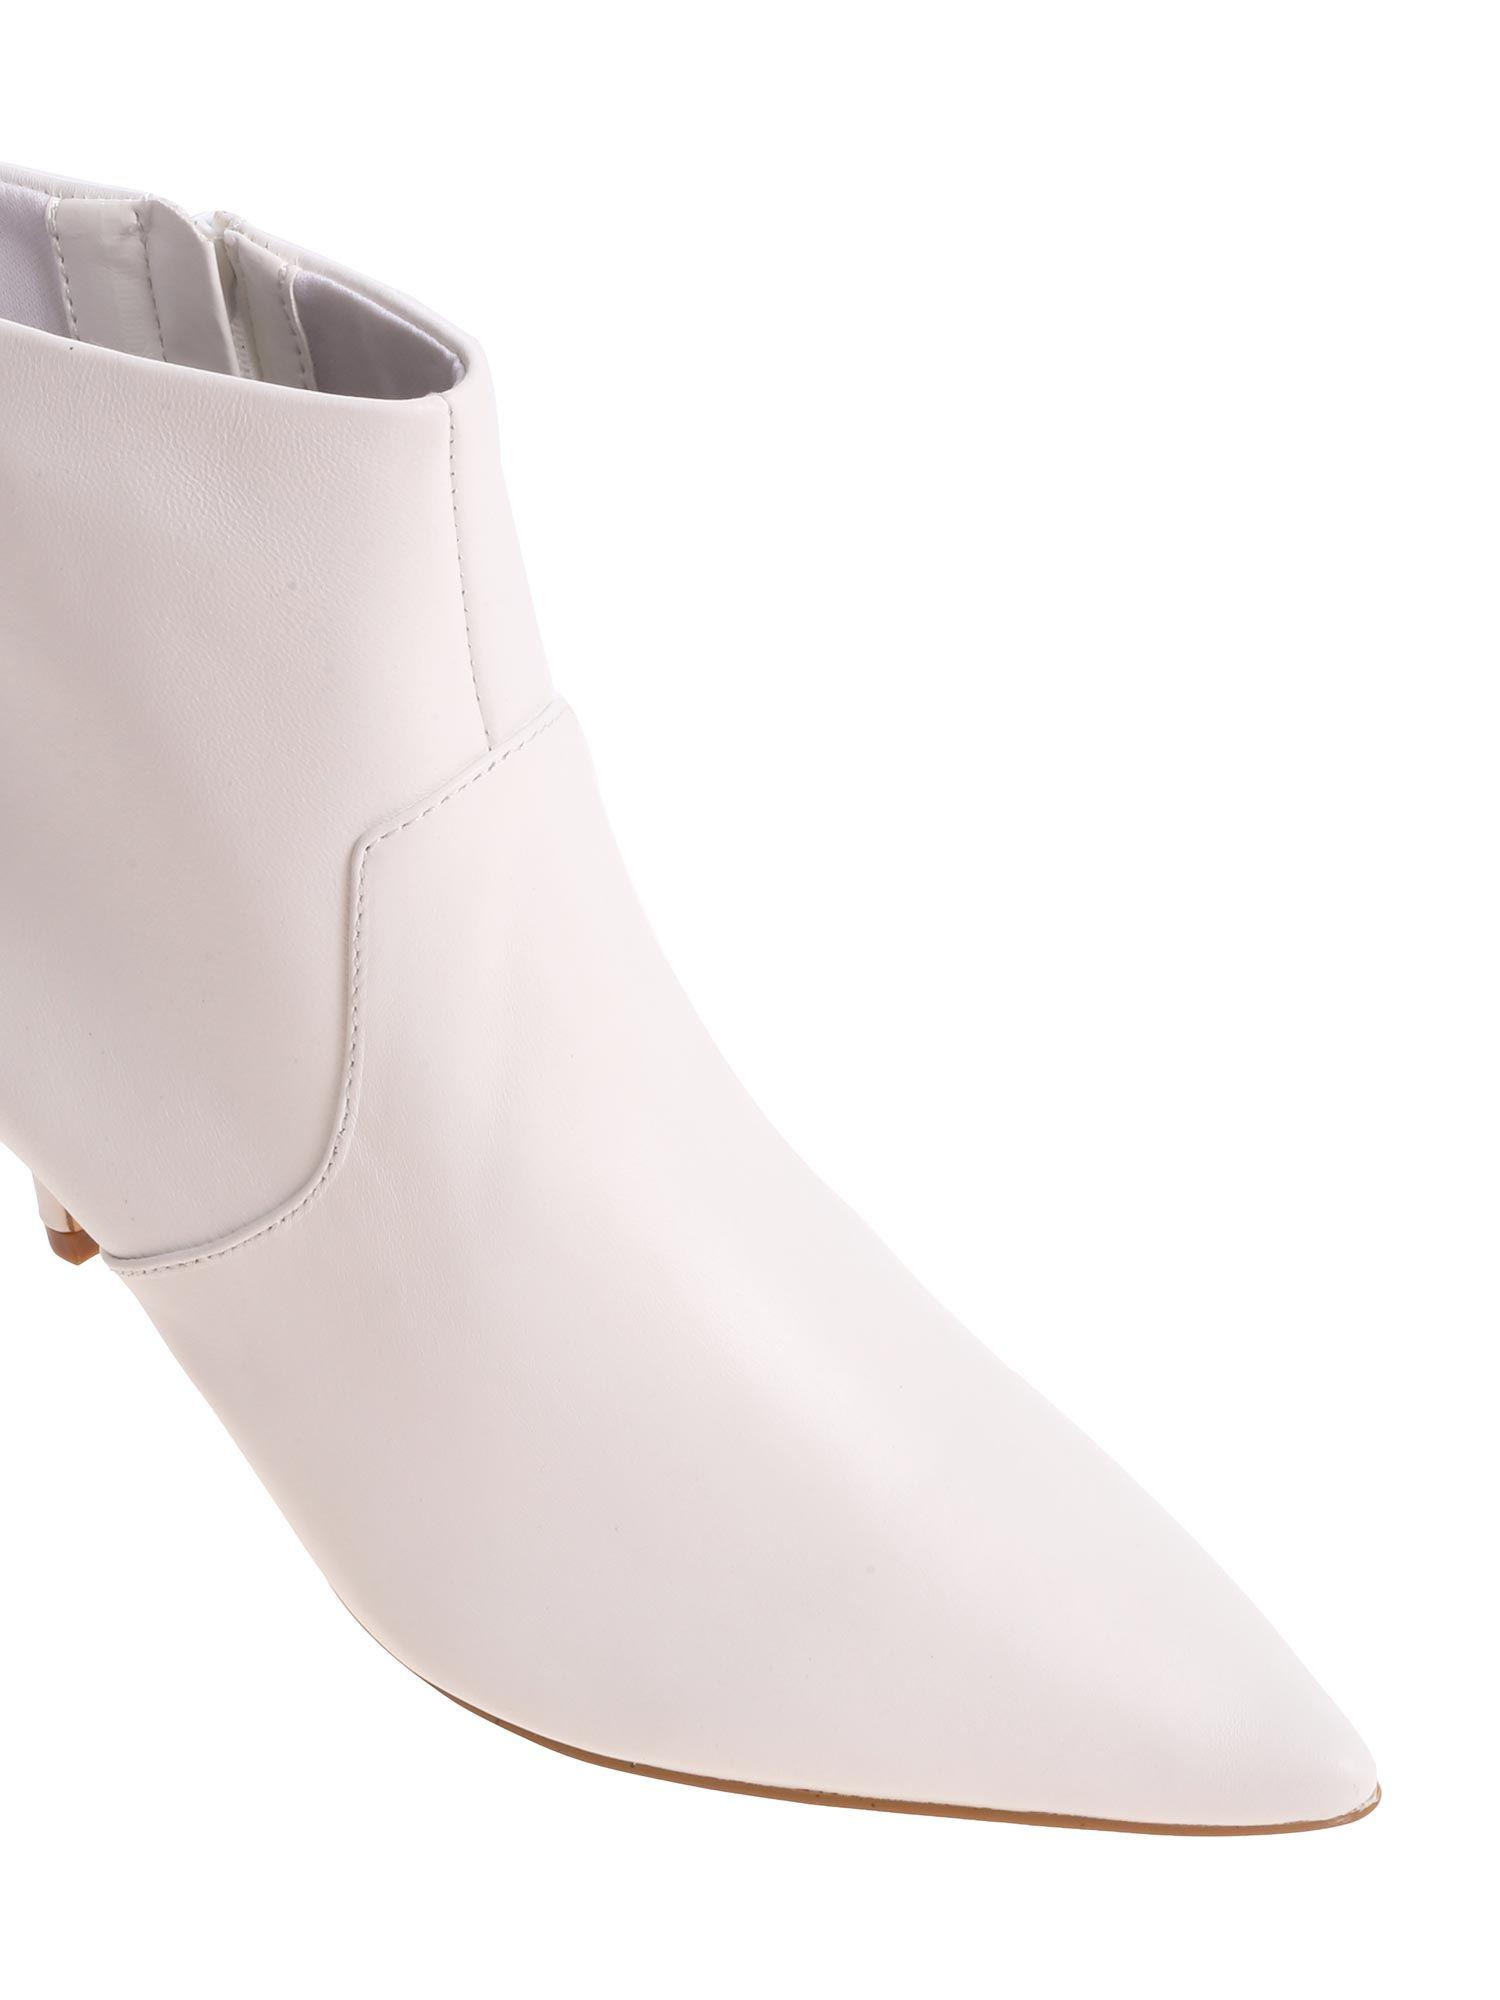 5323a226684 Steve Madden - White 60mm Rome Leather Boots - Lyst. View fullscreen